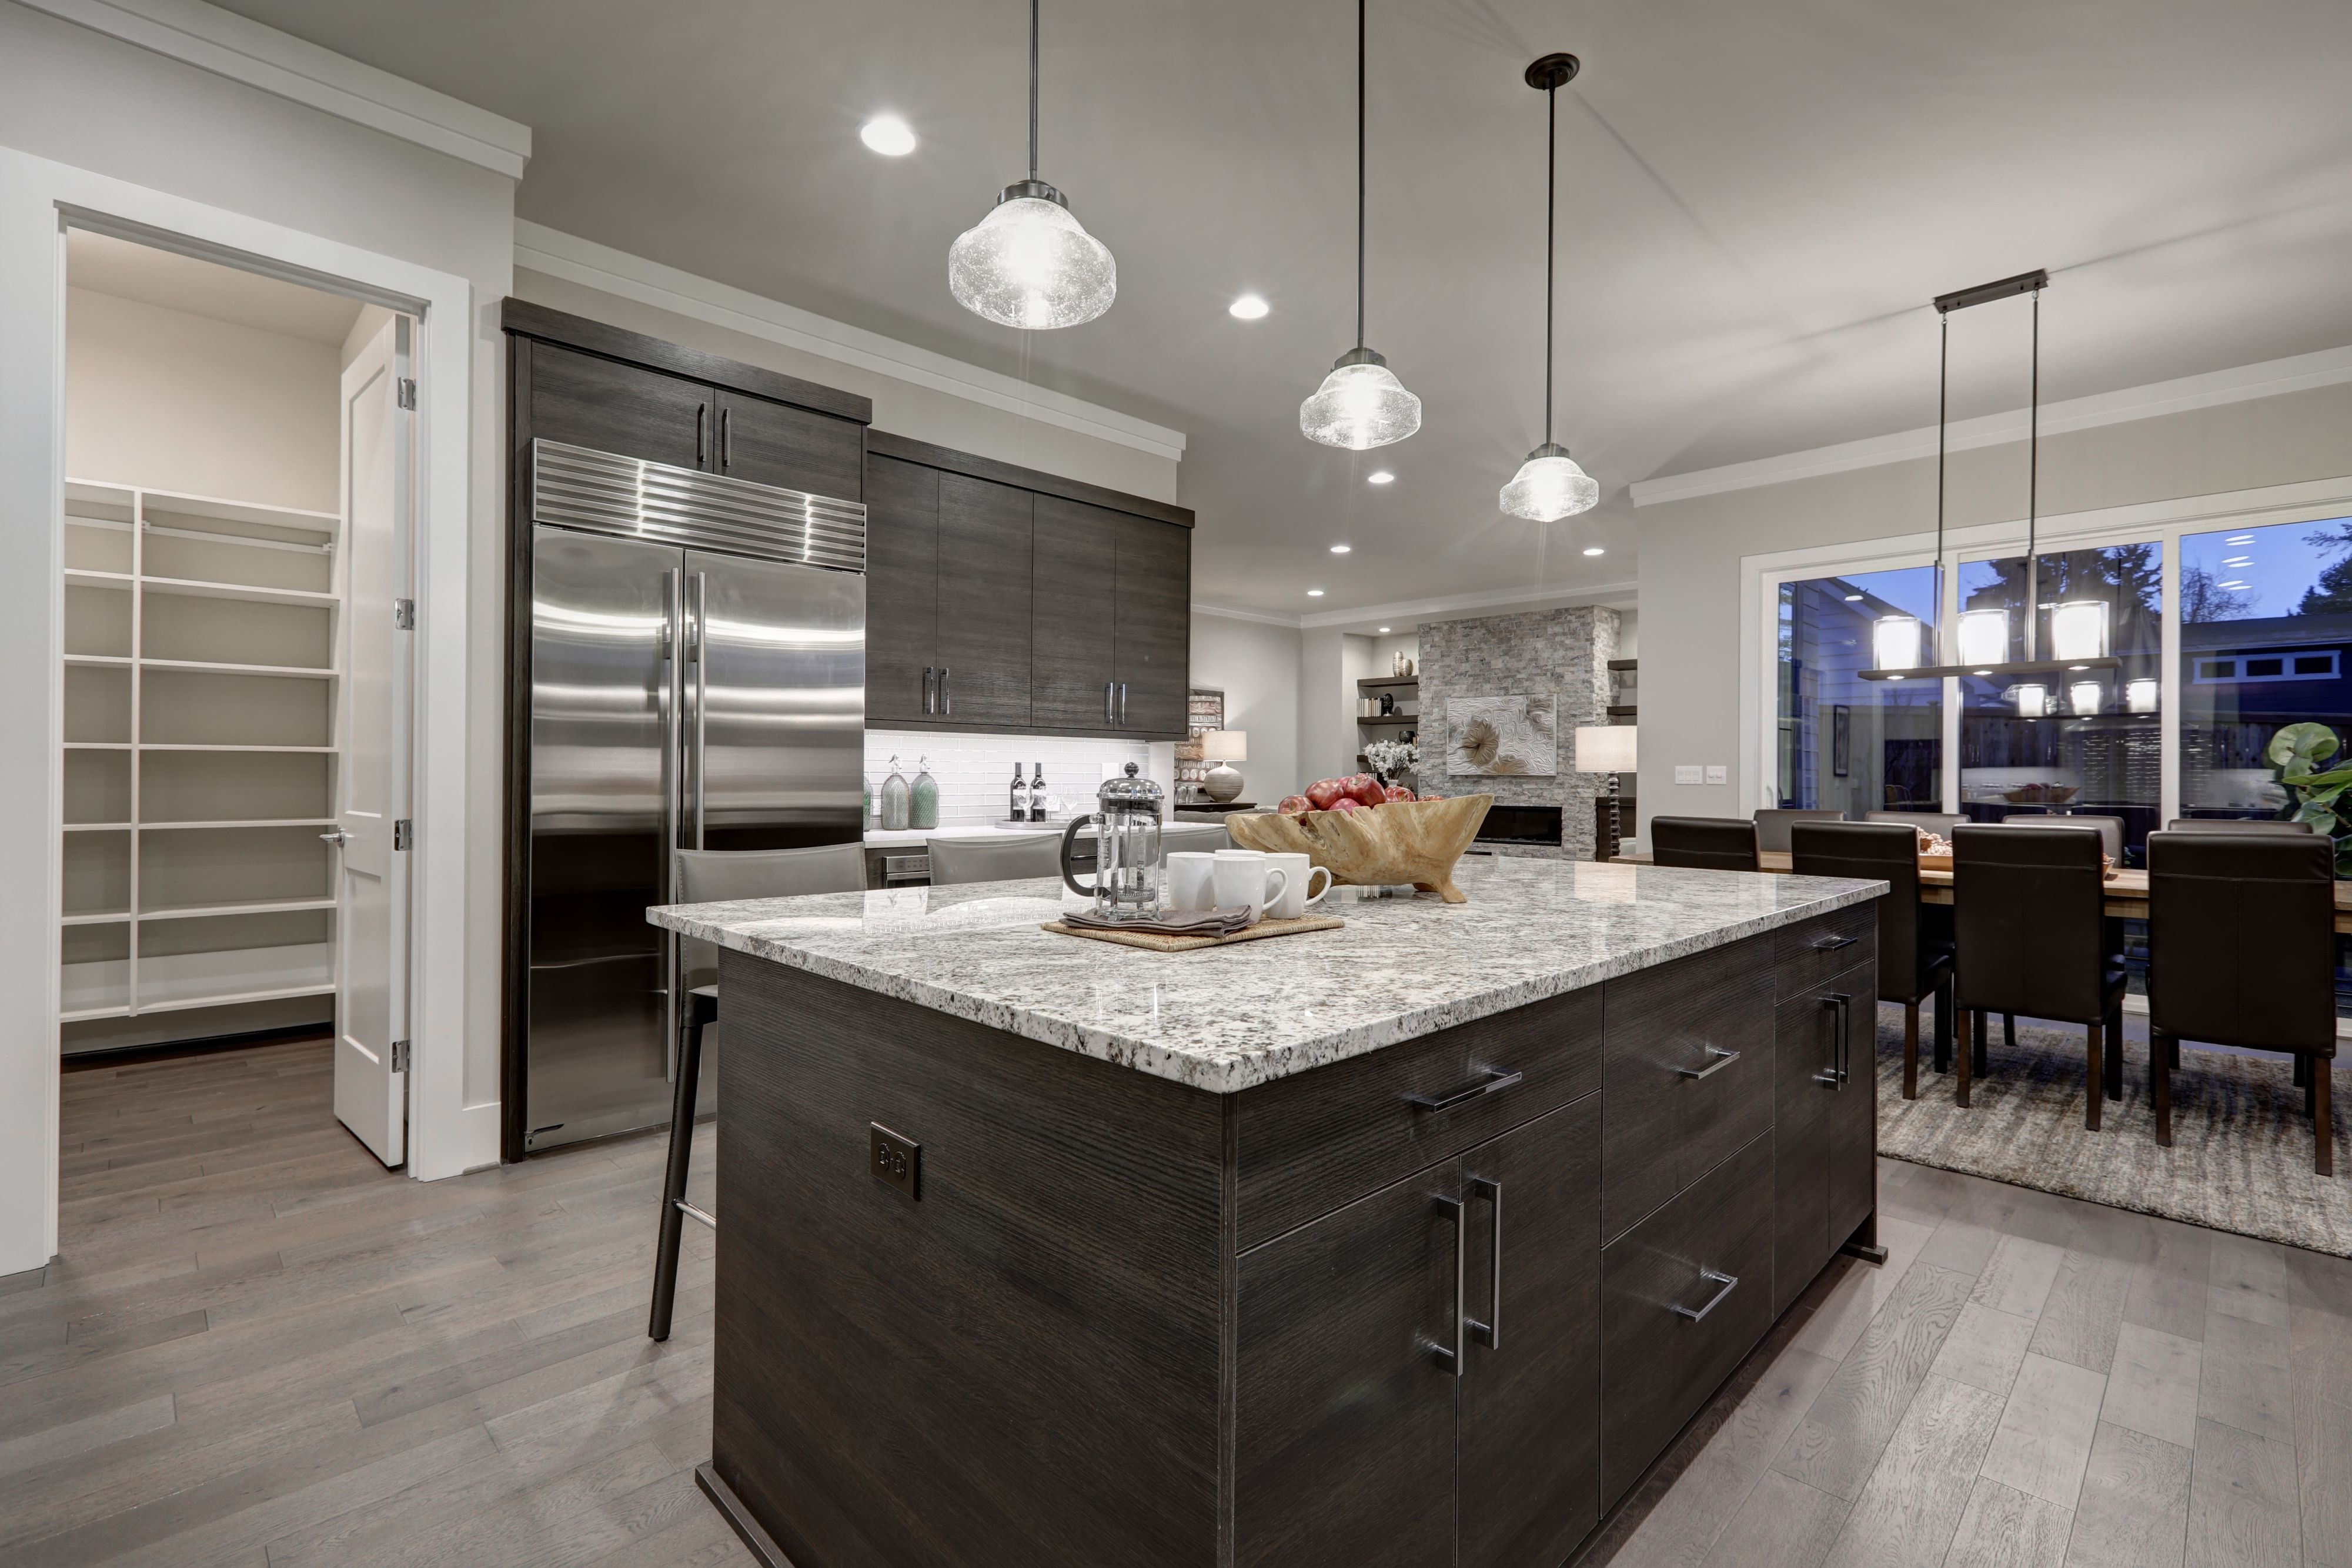 Luxury kitchen with dark gray cabinets on island, and modern light fixtures